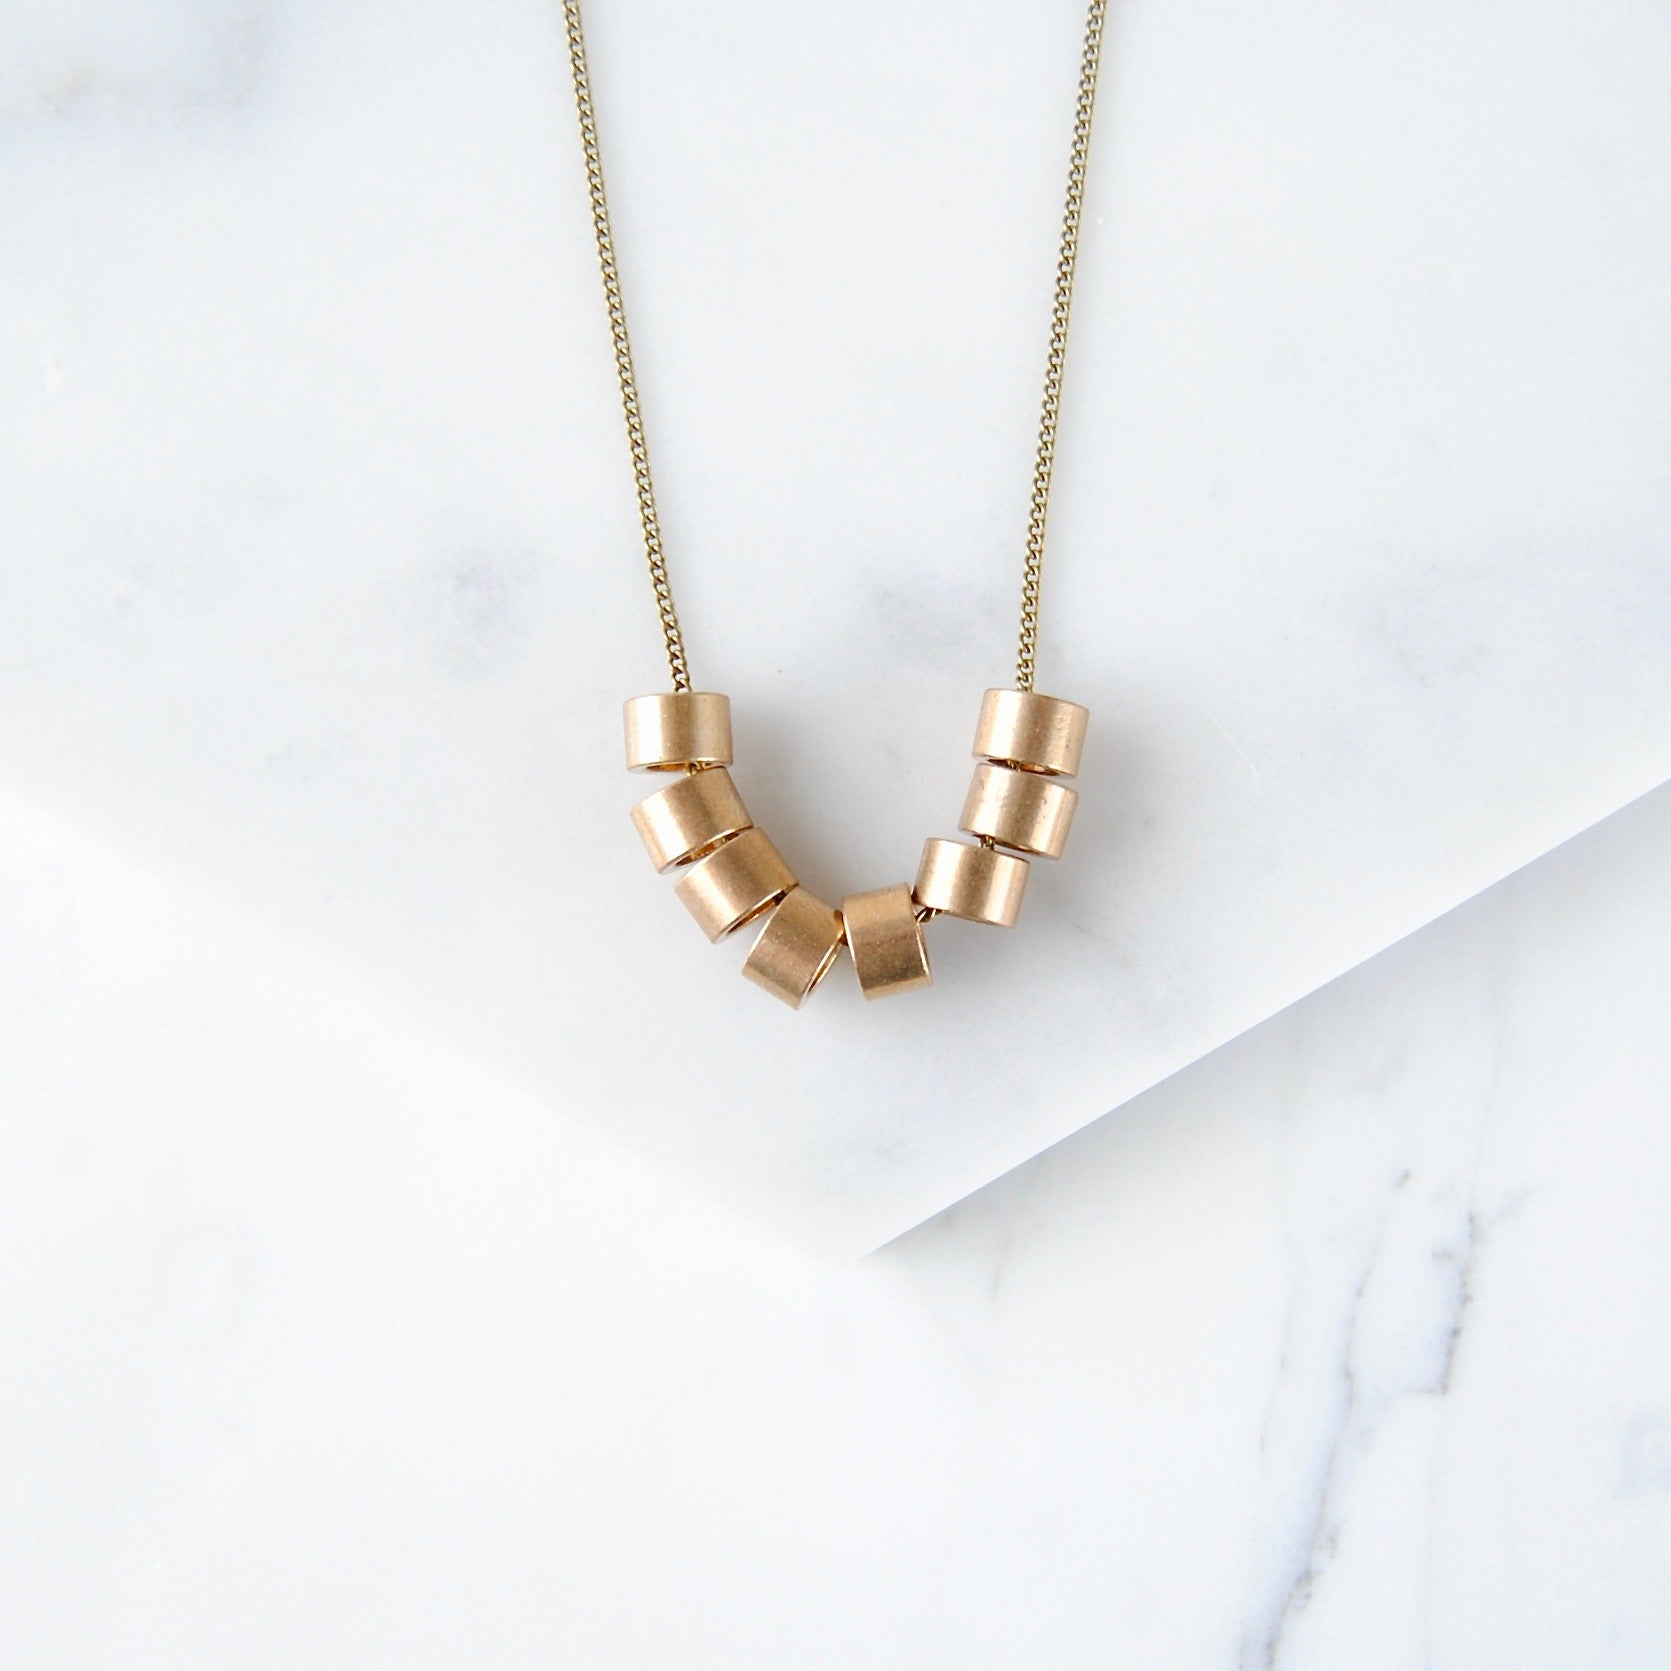 BRASS BEADS NECKLACE